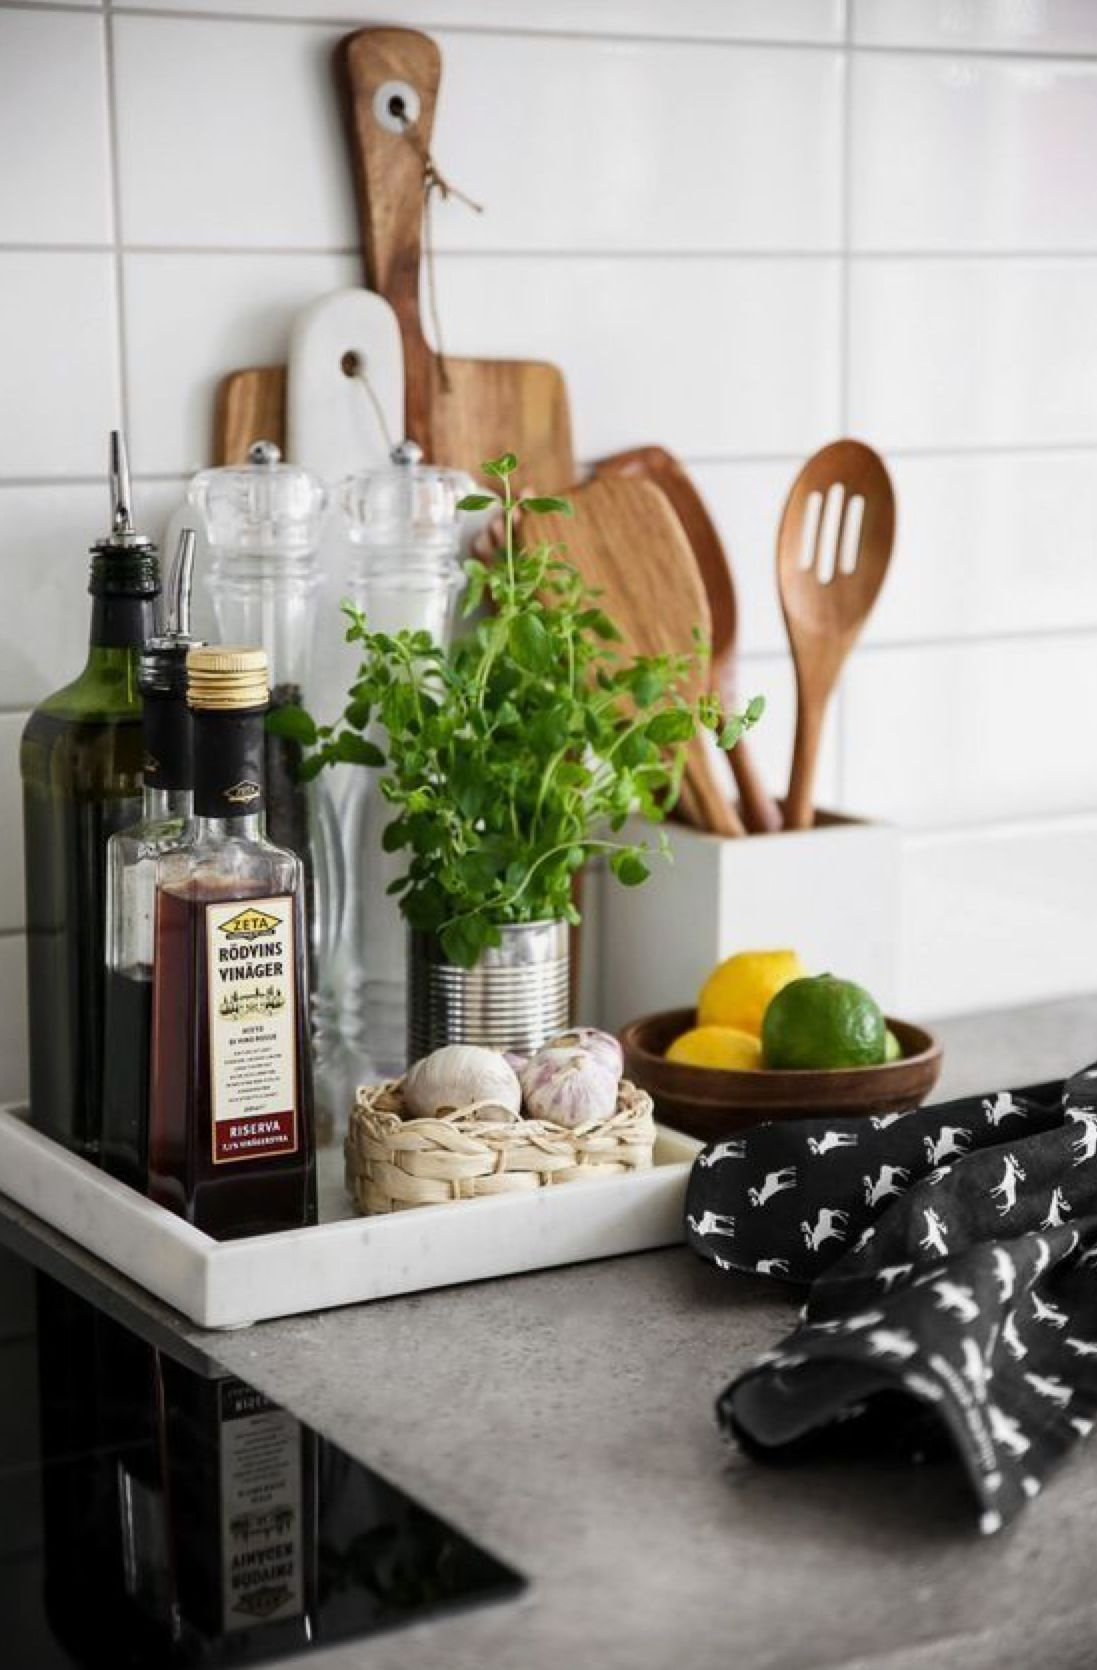 Organized Kitchen Counters Trayed Oils Etc Kitchen Counter Decor Kitchen Styling Kitchen Remodel Small